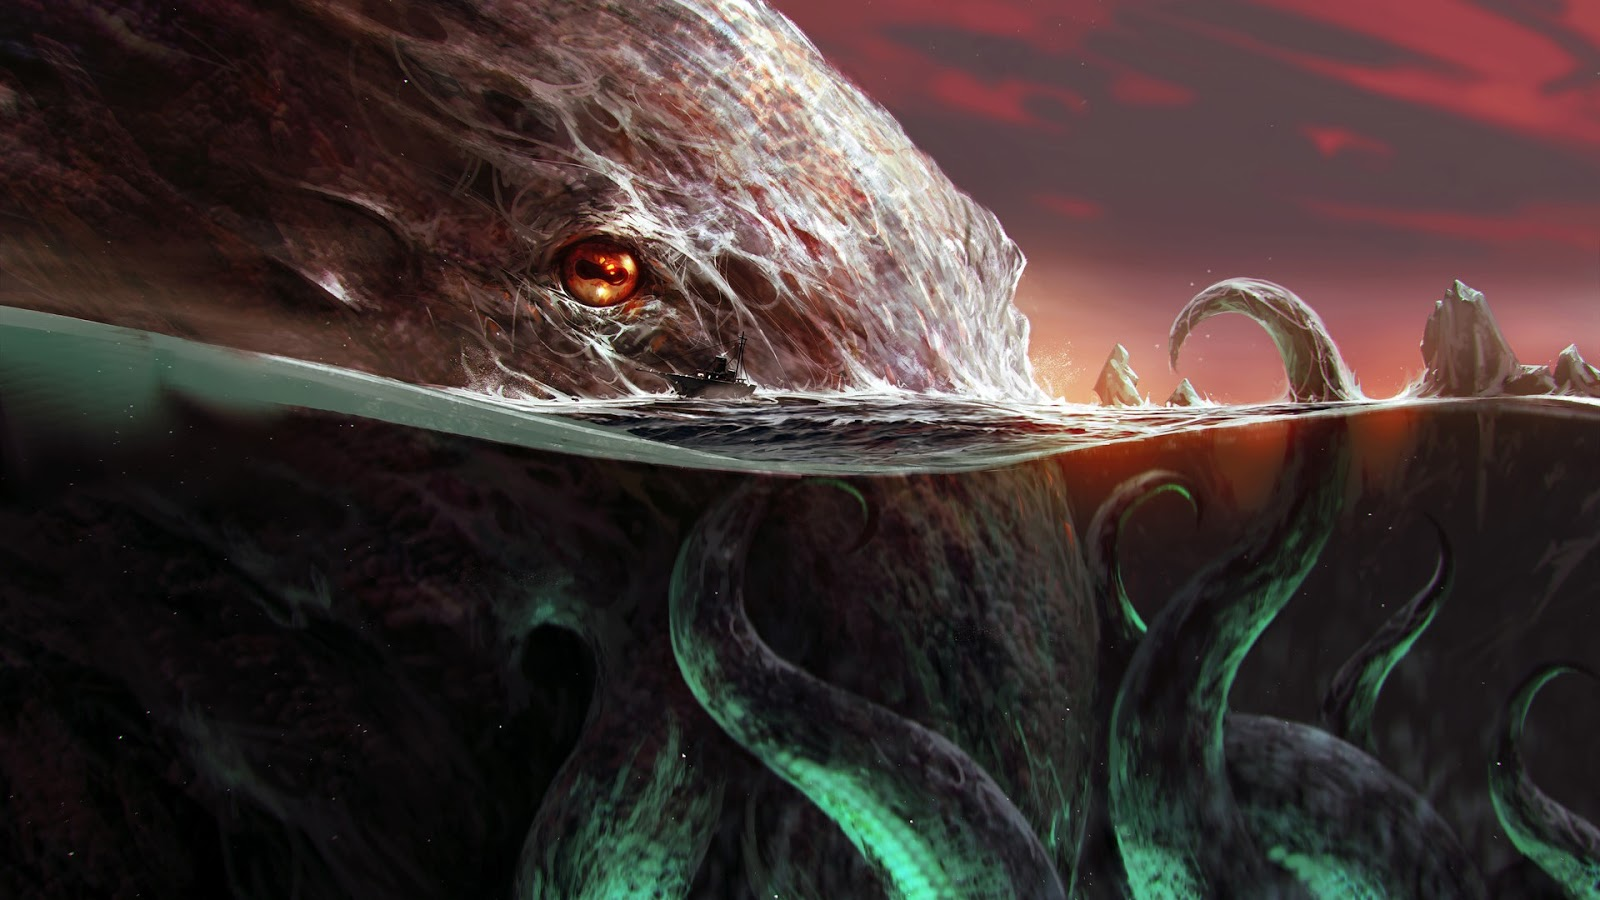 Cthulhu Hd Wallpaper Desktop Cool Wallpapers Heroscreencc